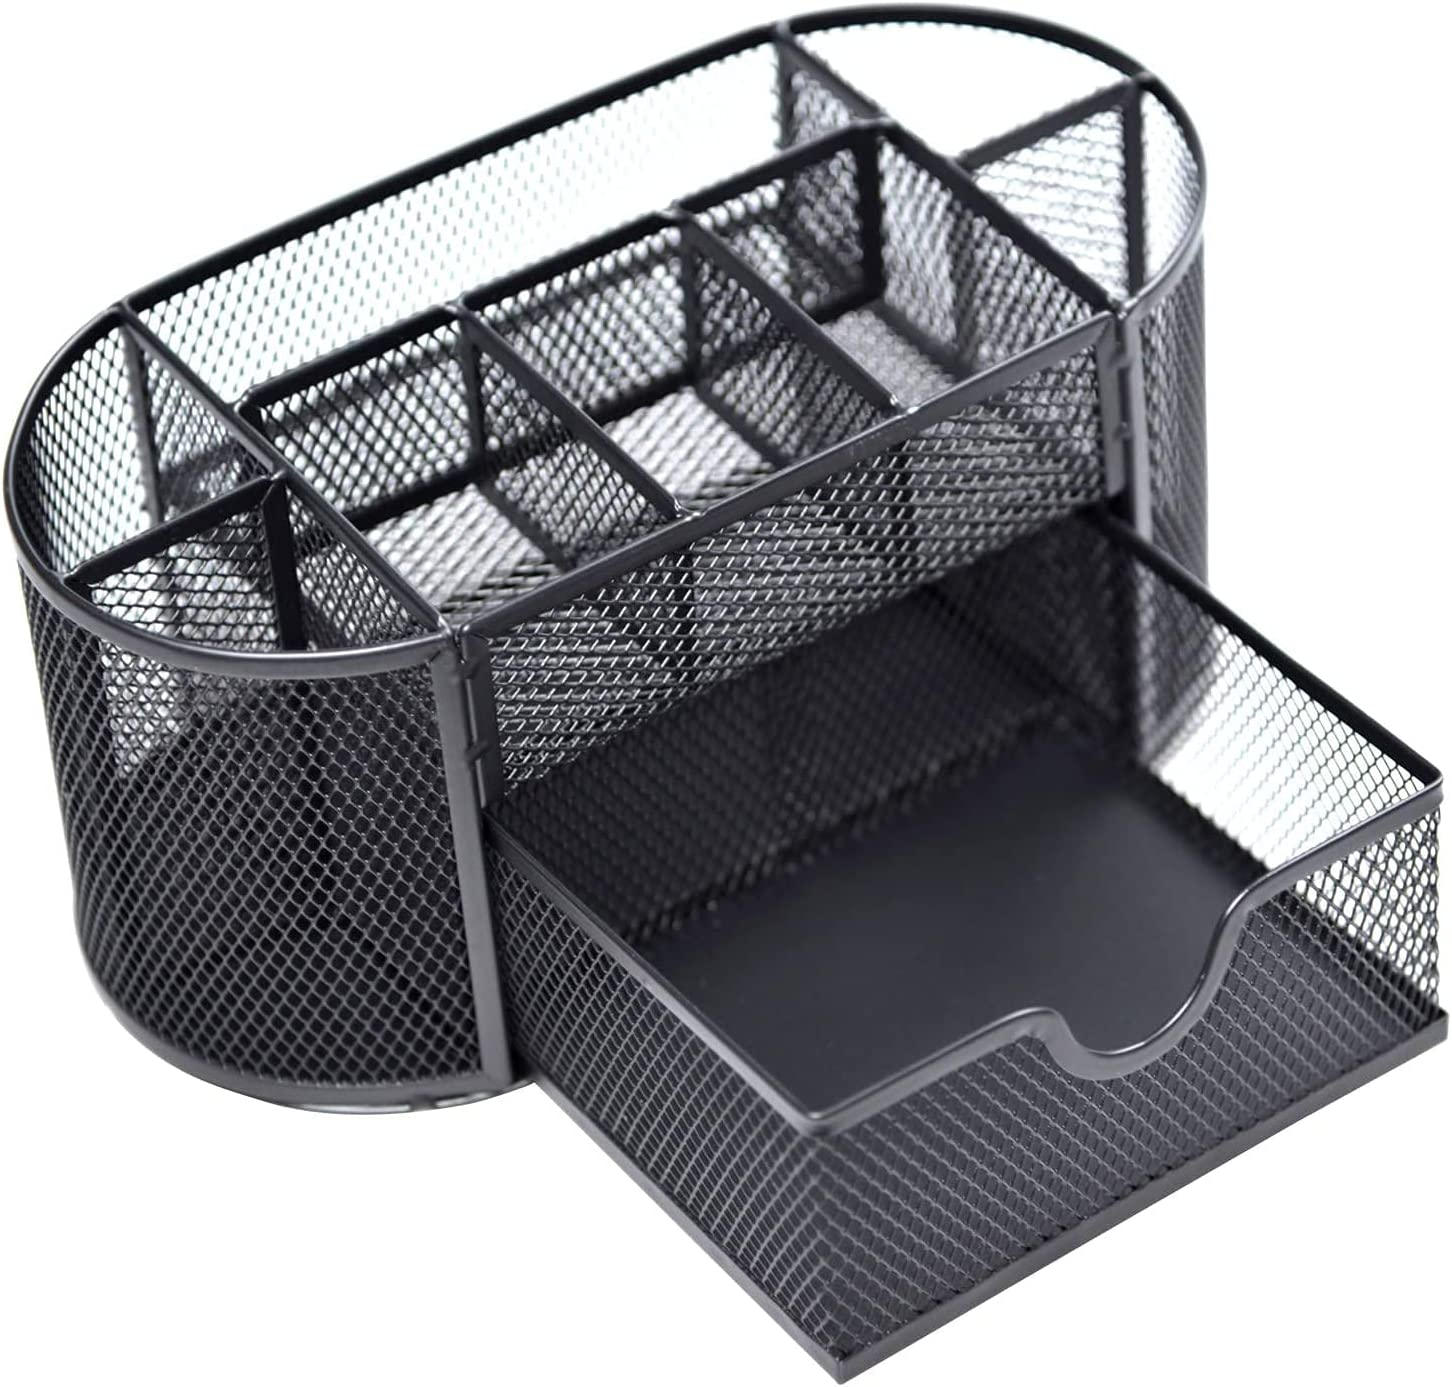 Mesh Pen Organizer Free shipping anywhere in the nation Sales results No. 1 for Desk Organize Holders Multifunctional